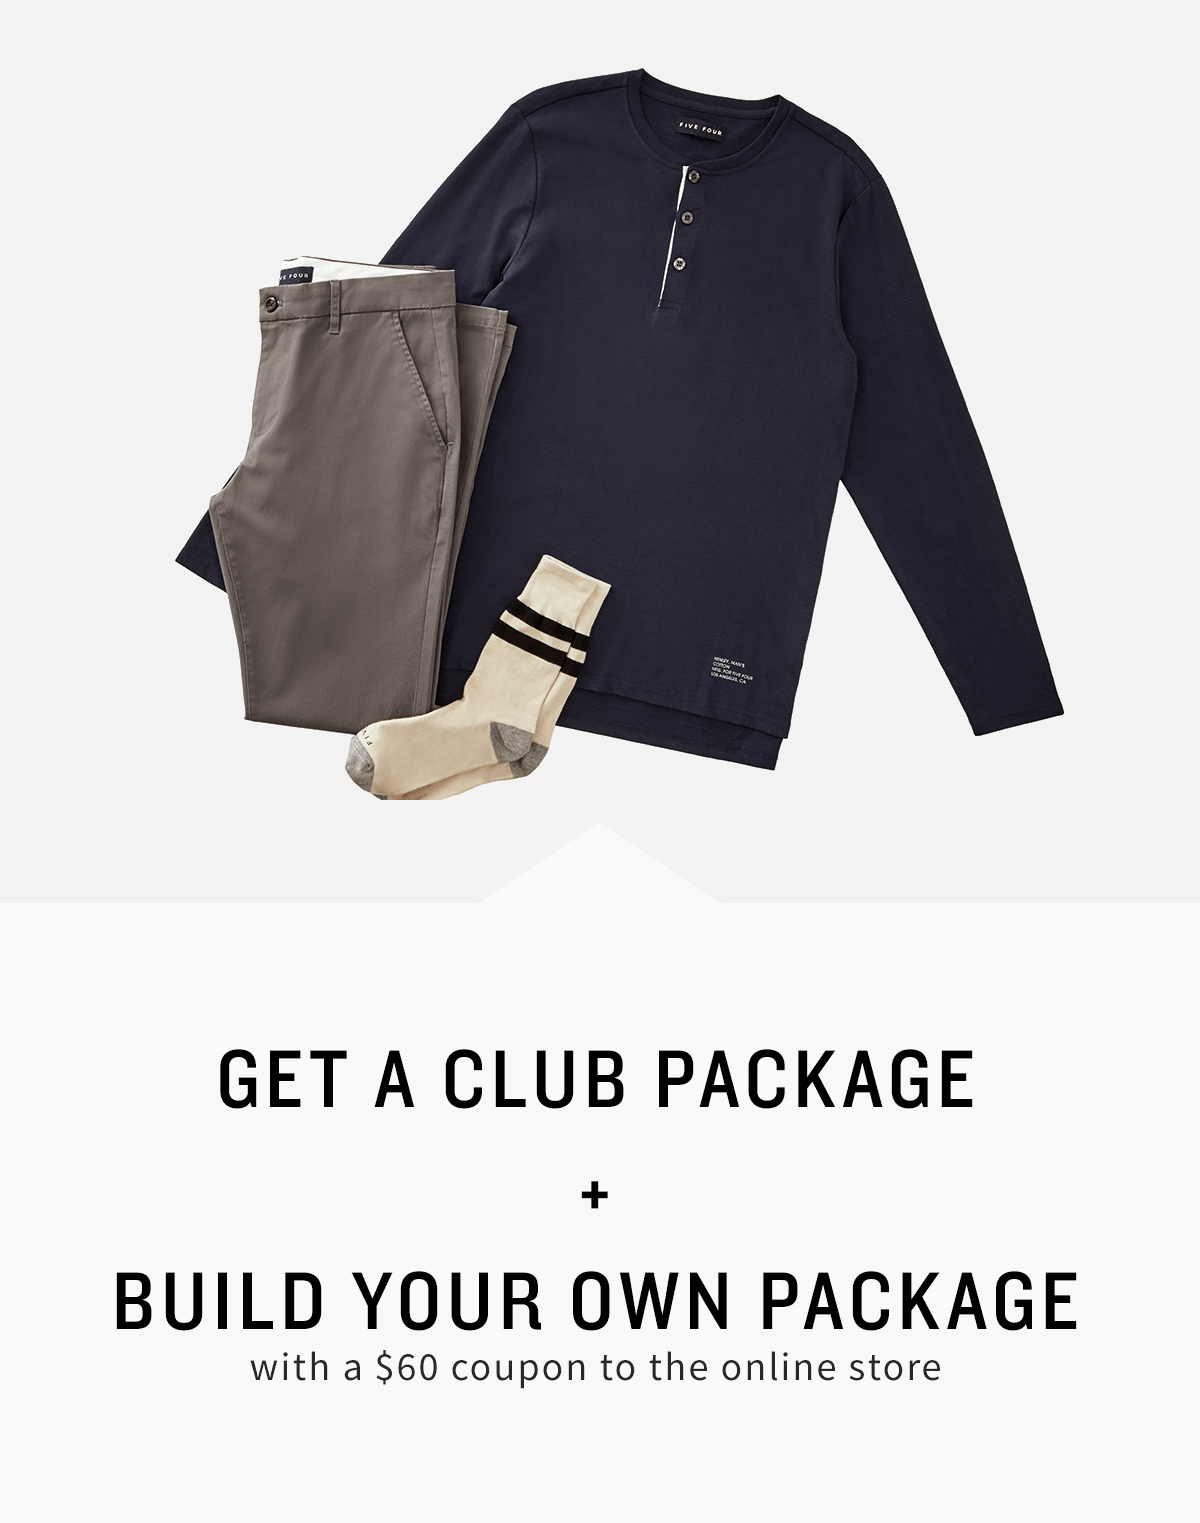 Five Four Club Deal: Subscribe & Get $60 Store Coupon!